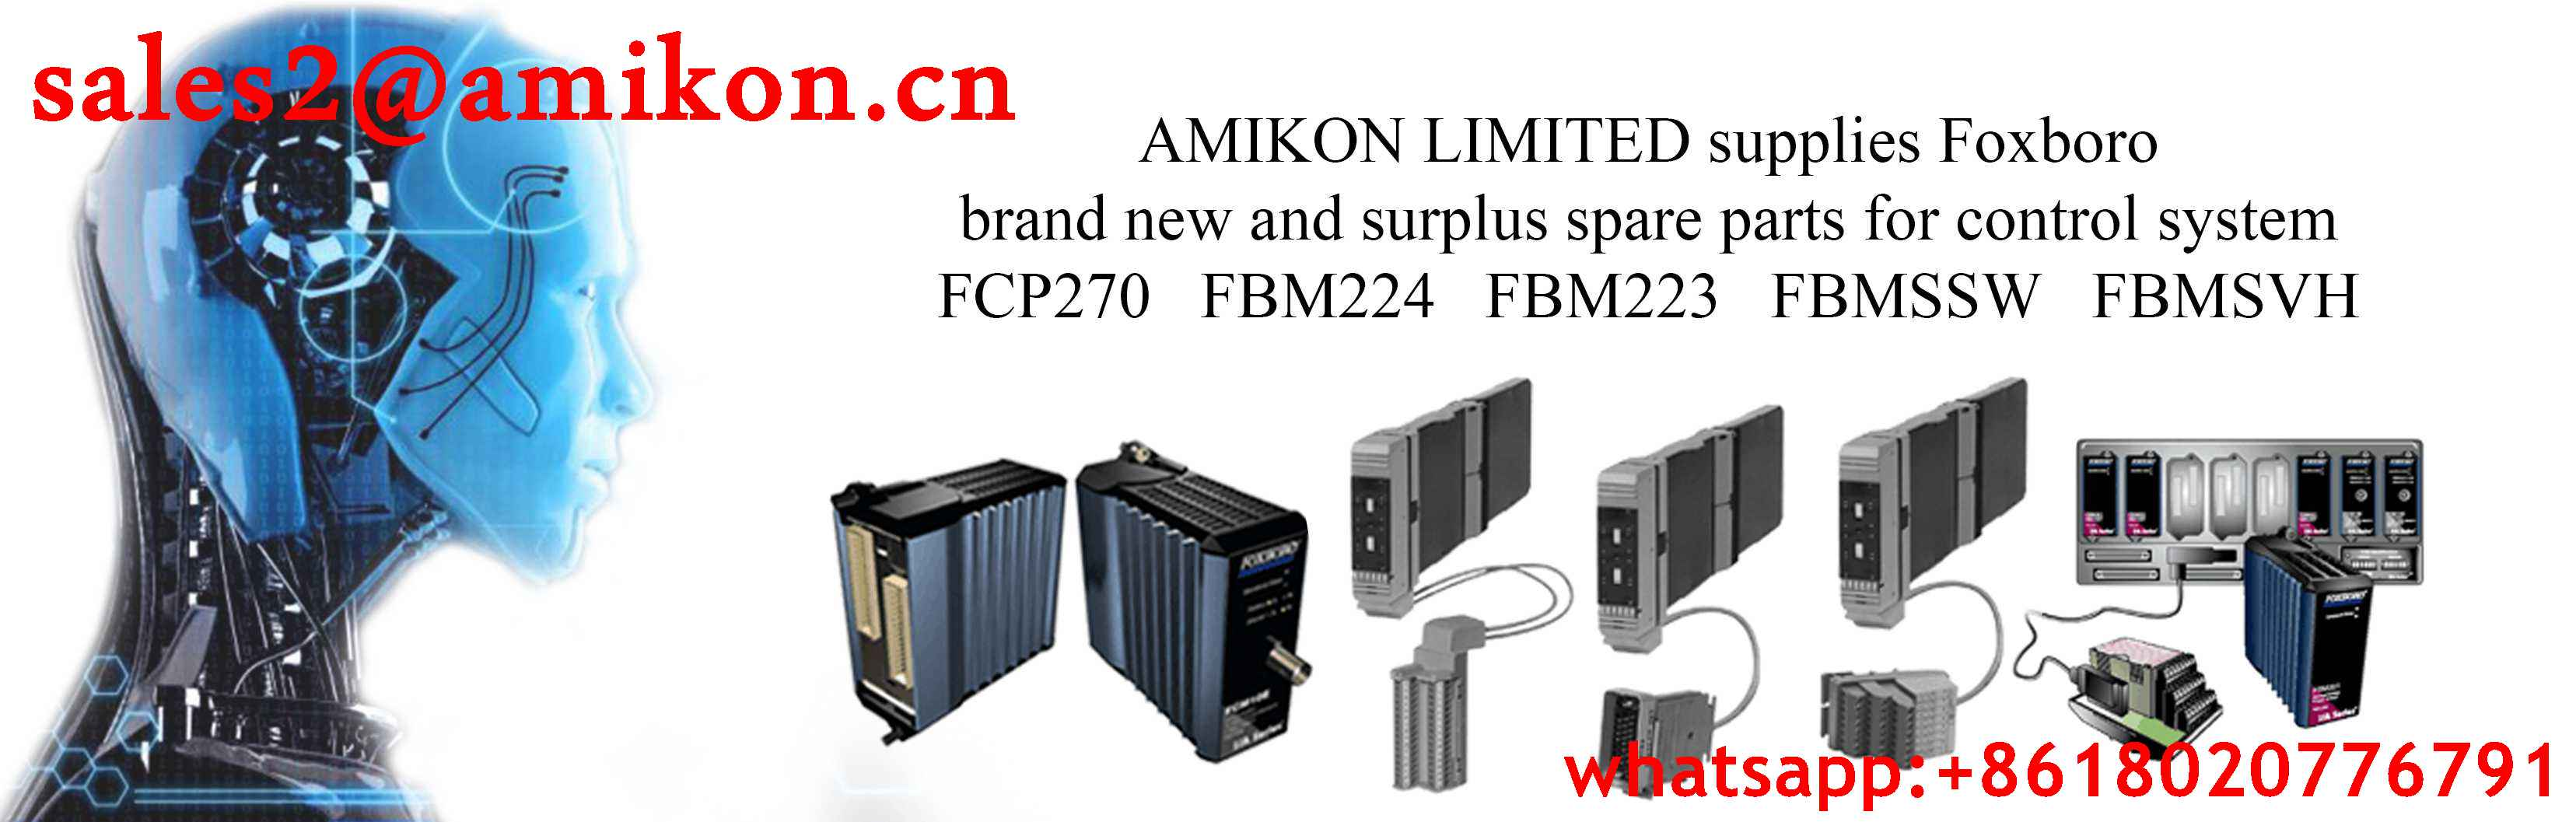 IC697ALG321 GE General Electric sales2@amikon.cn PLC DCS Industry Control System Module